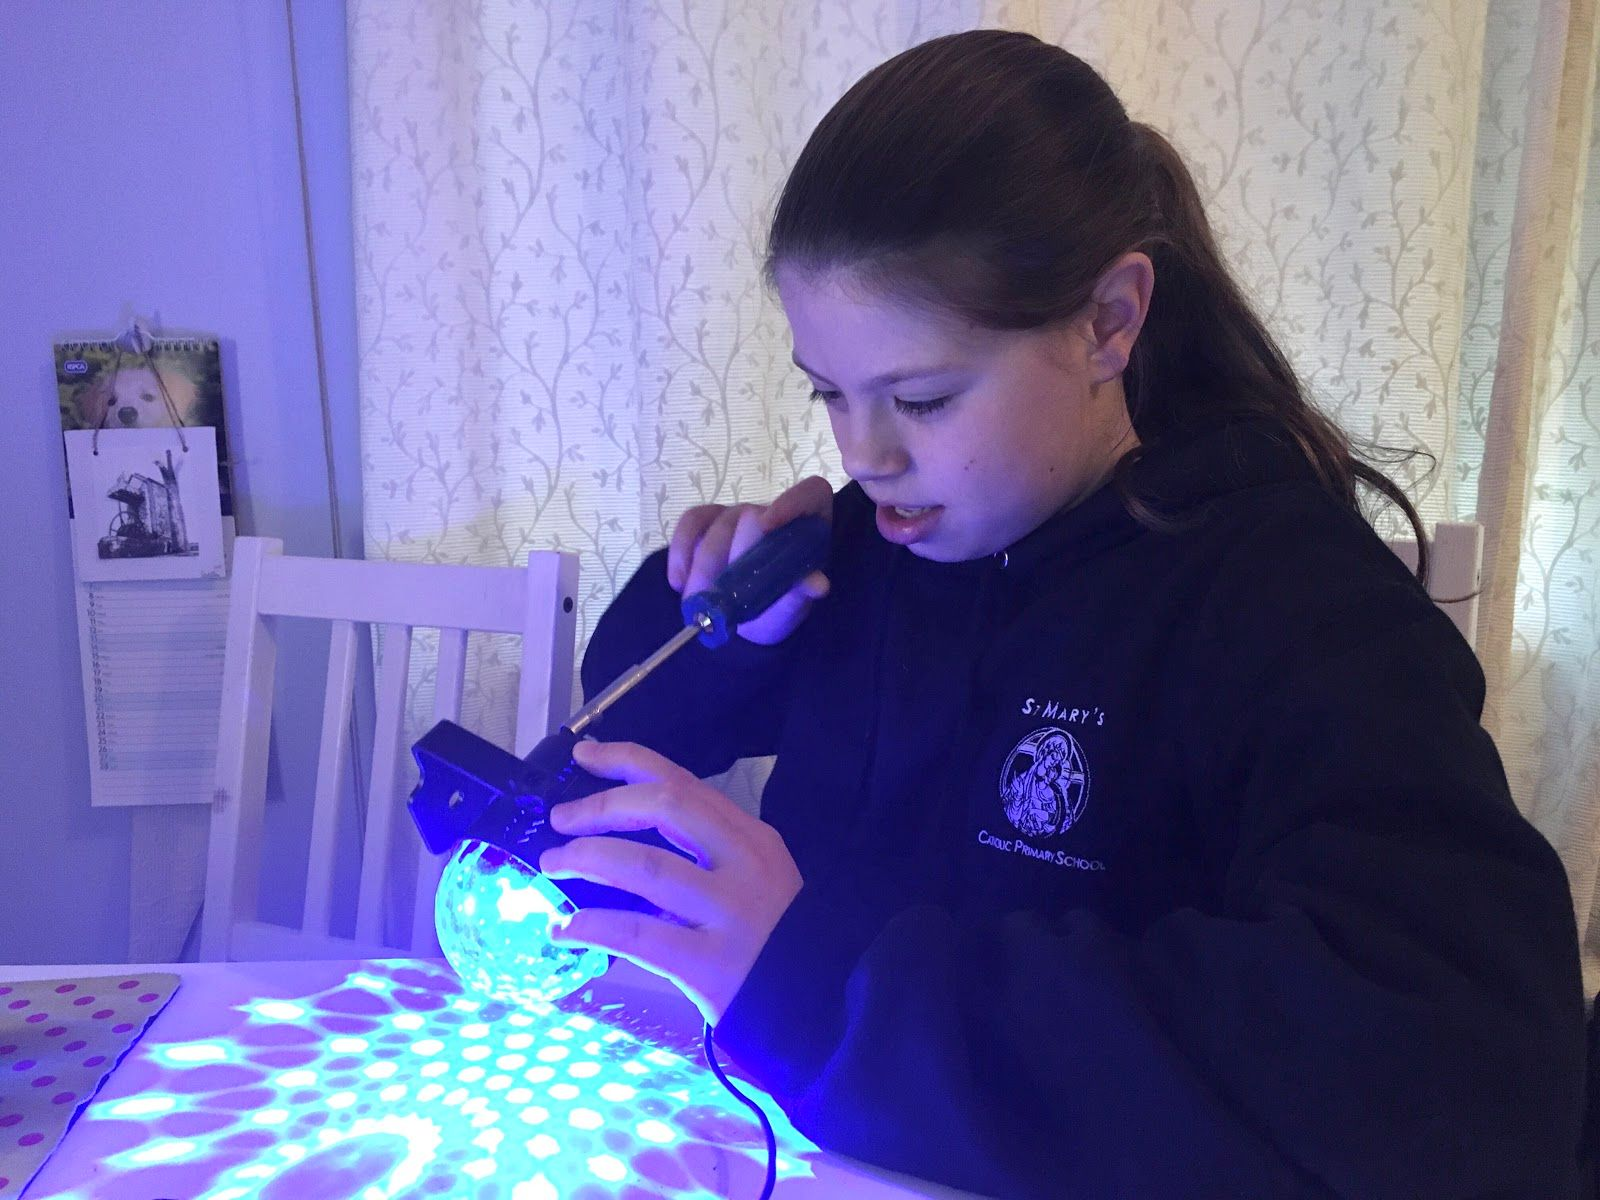 Dahlia hard at work on her latest physical computing project.